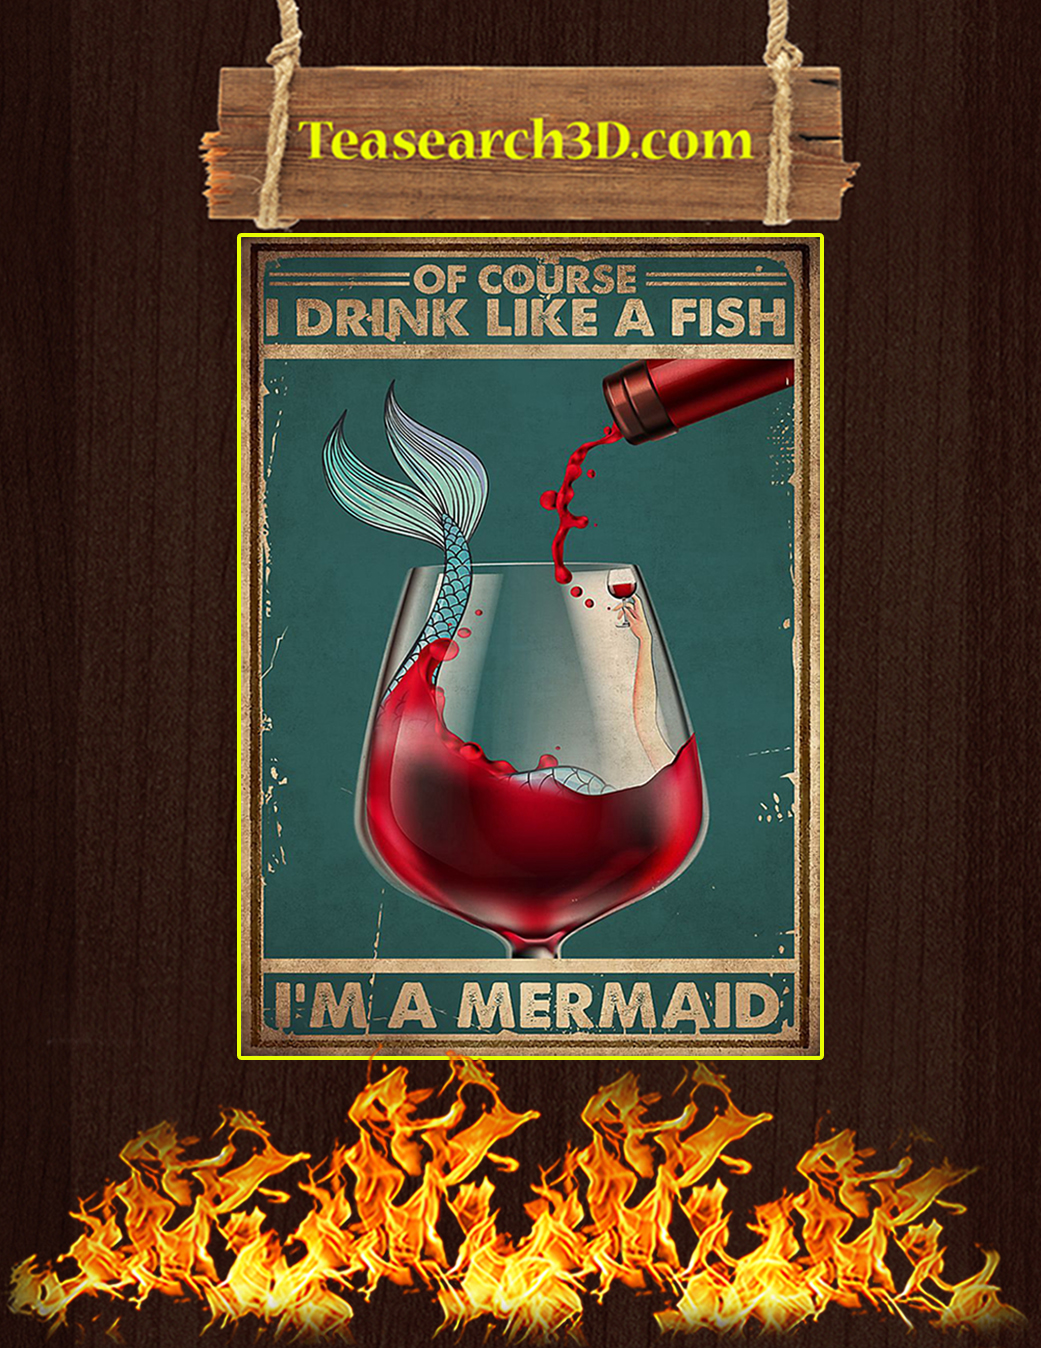 Wine of course I drink like a fish I'm a mermaid poster A1